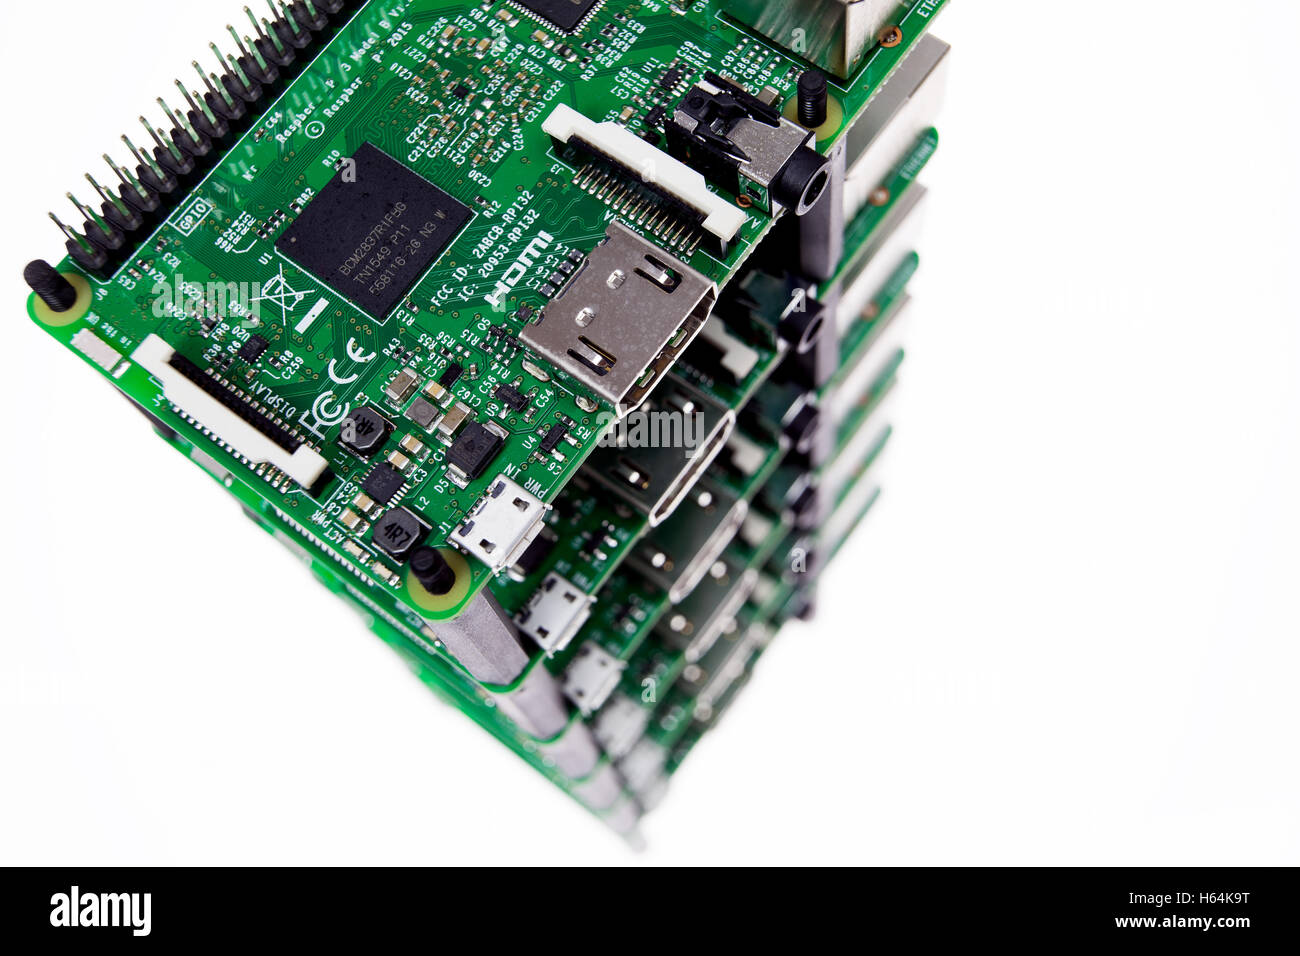 Images Of With Small Printed Circuit Board Connectors Wiring Printedcircuitboardassembliesjpg Another Files